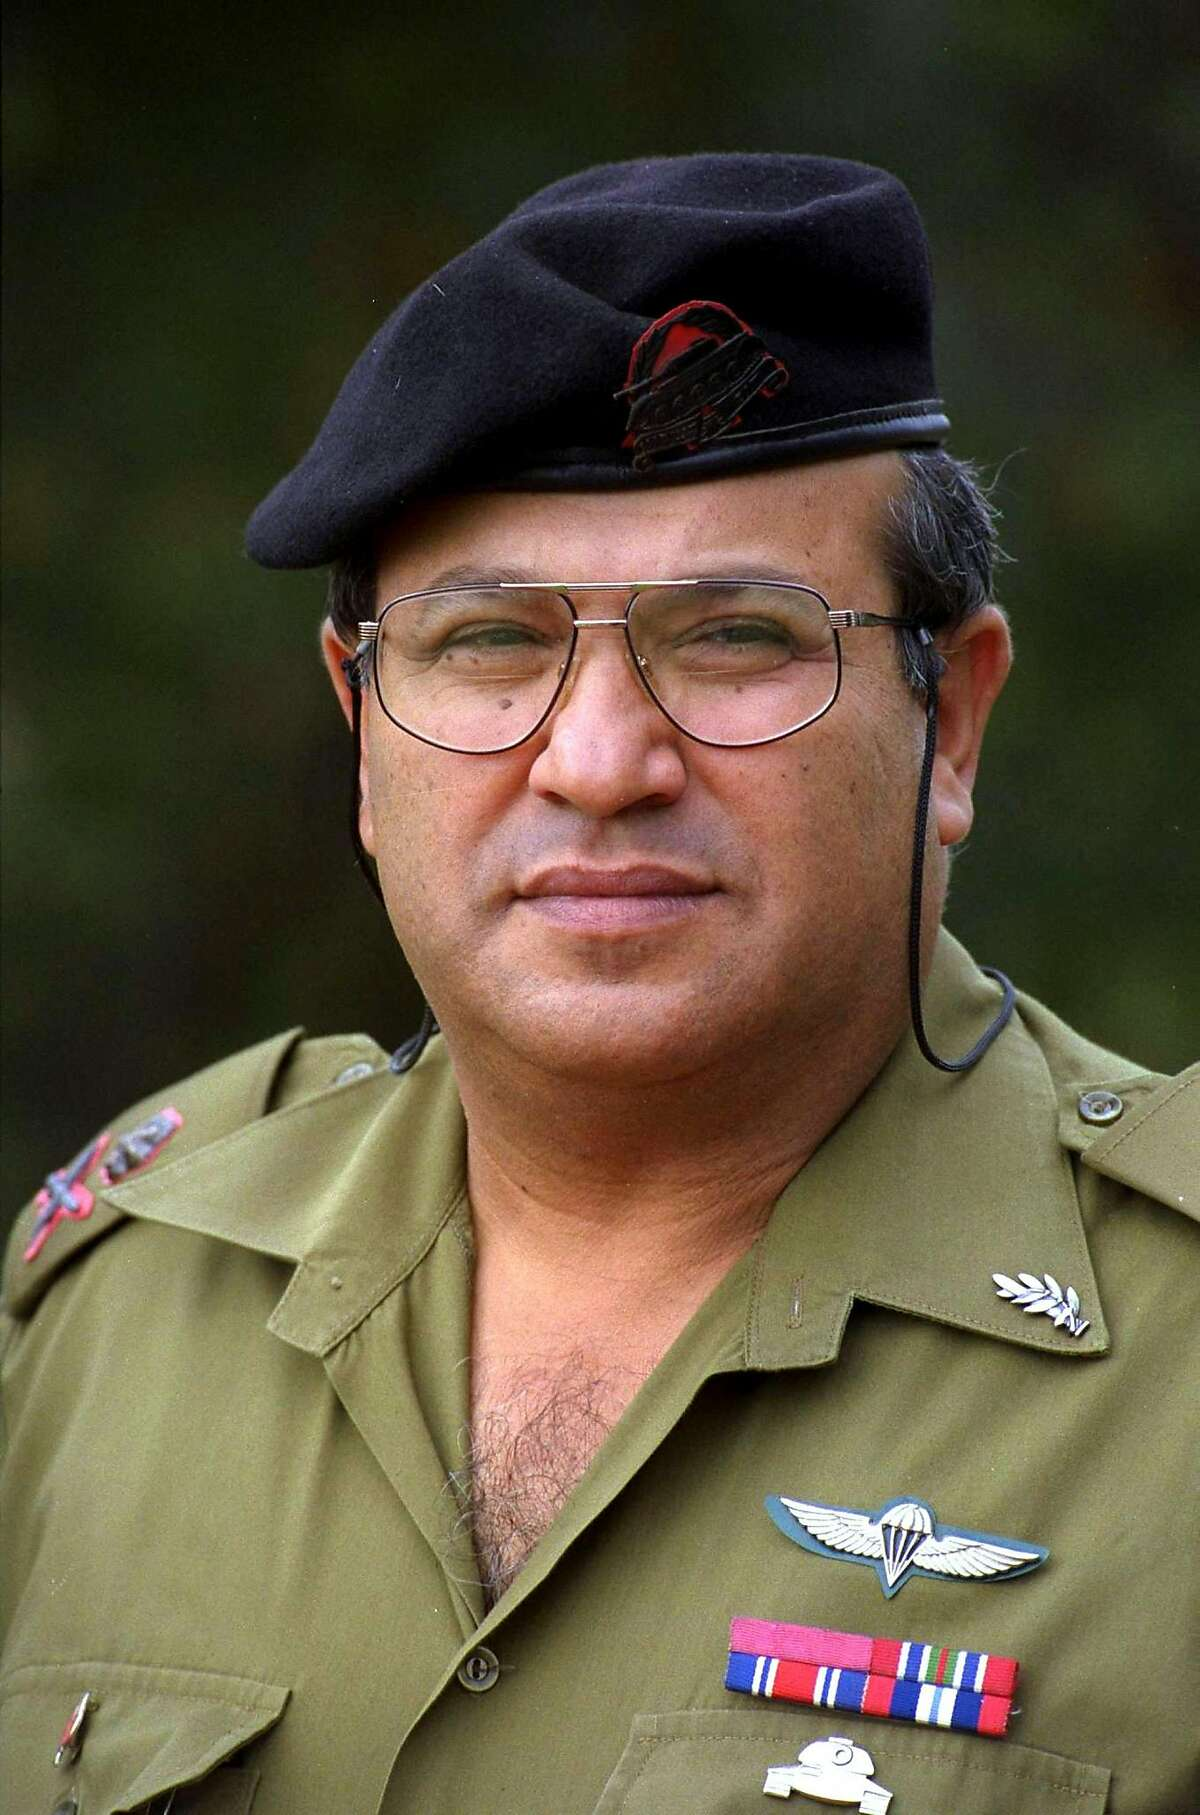 JERUSALEM, ISRAEL- SEPTEMBER 10: Meir Dagan, shown in this undated photo wearing his rank and his two citations for bravery, was appointed as the Director of the Mossad by Israeli Prime Minister Ariel Sharon September 10, 2002 in Jerusalem, Israel. Dagan, 55, who is closely aligned with Sharon and whose appointment is causing controversy in Israel, served in the IDF for 32 years, retiring with the rank of Major-General. (Photo by Yaakov Saar/GPO/Getty Images)